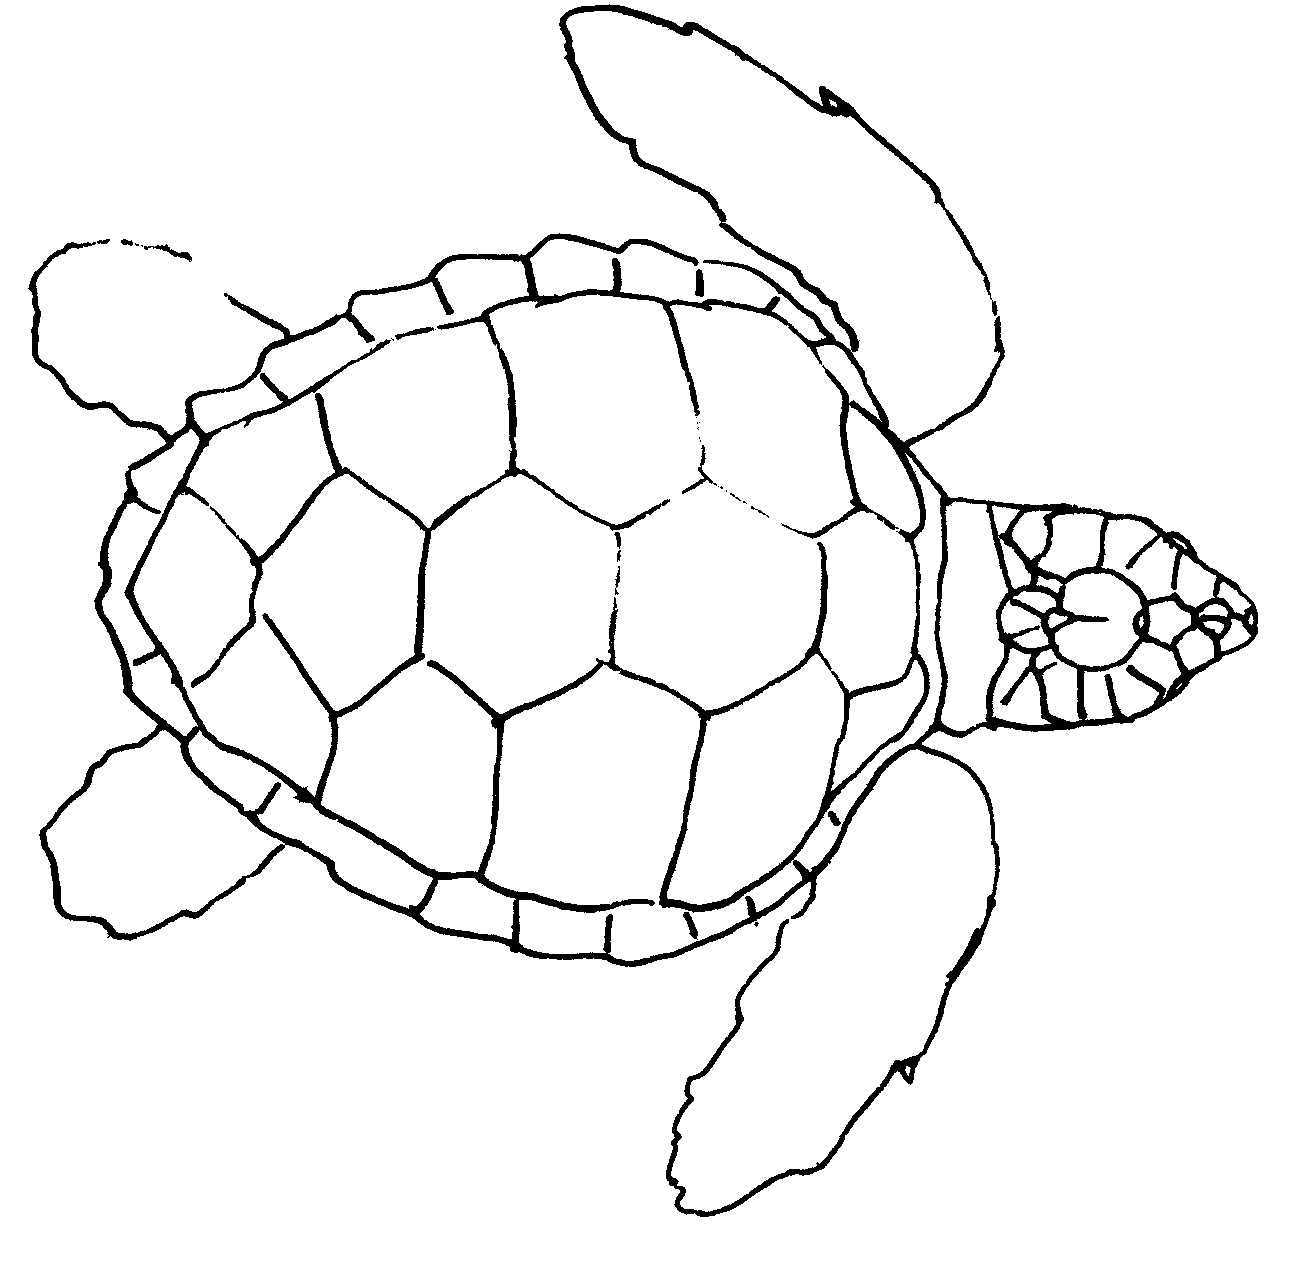 1295x1261 Expert Outline Of Turtle Simple Drawing Coloring Pages For Kids